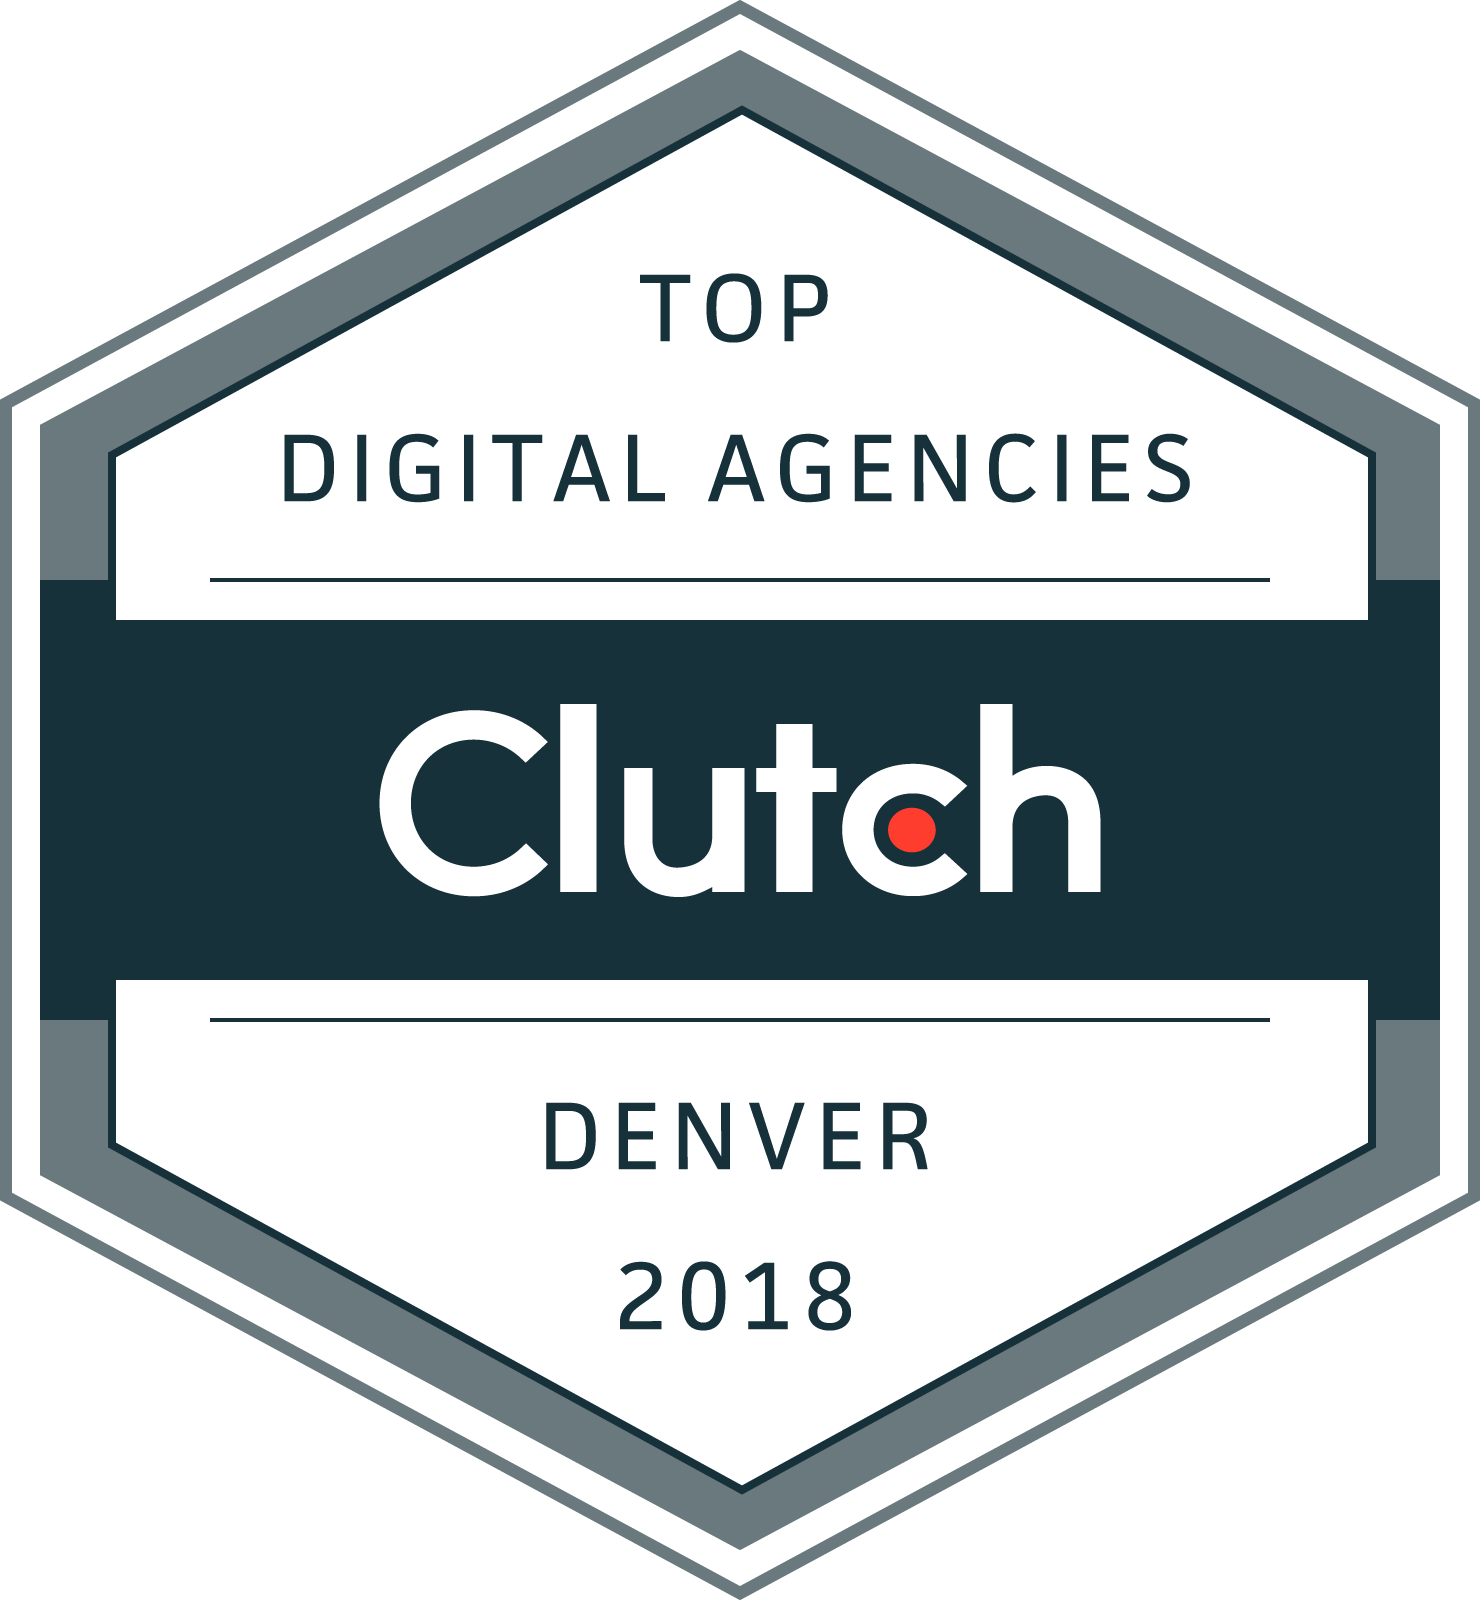 Clutch Top Digital Agencies 2018 Award